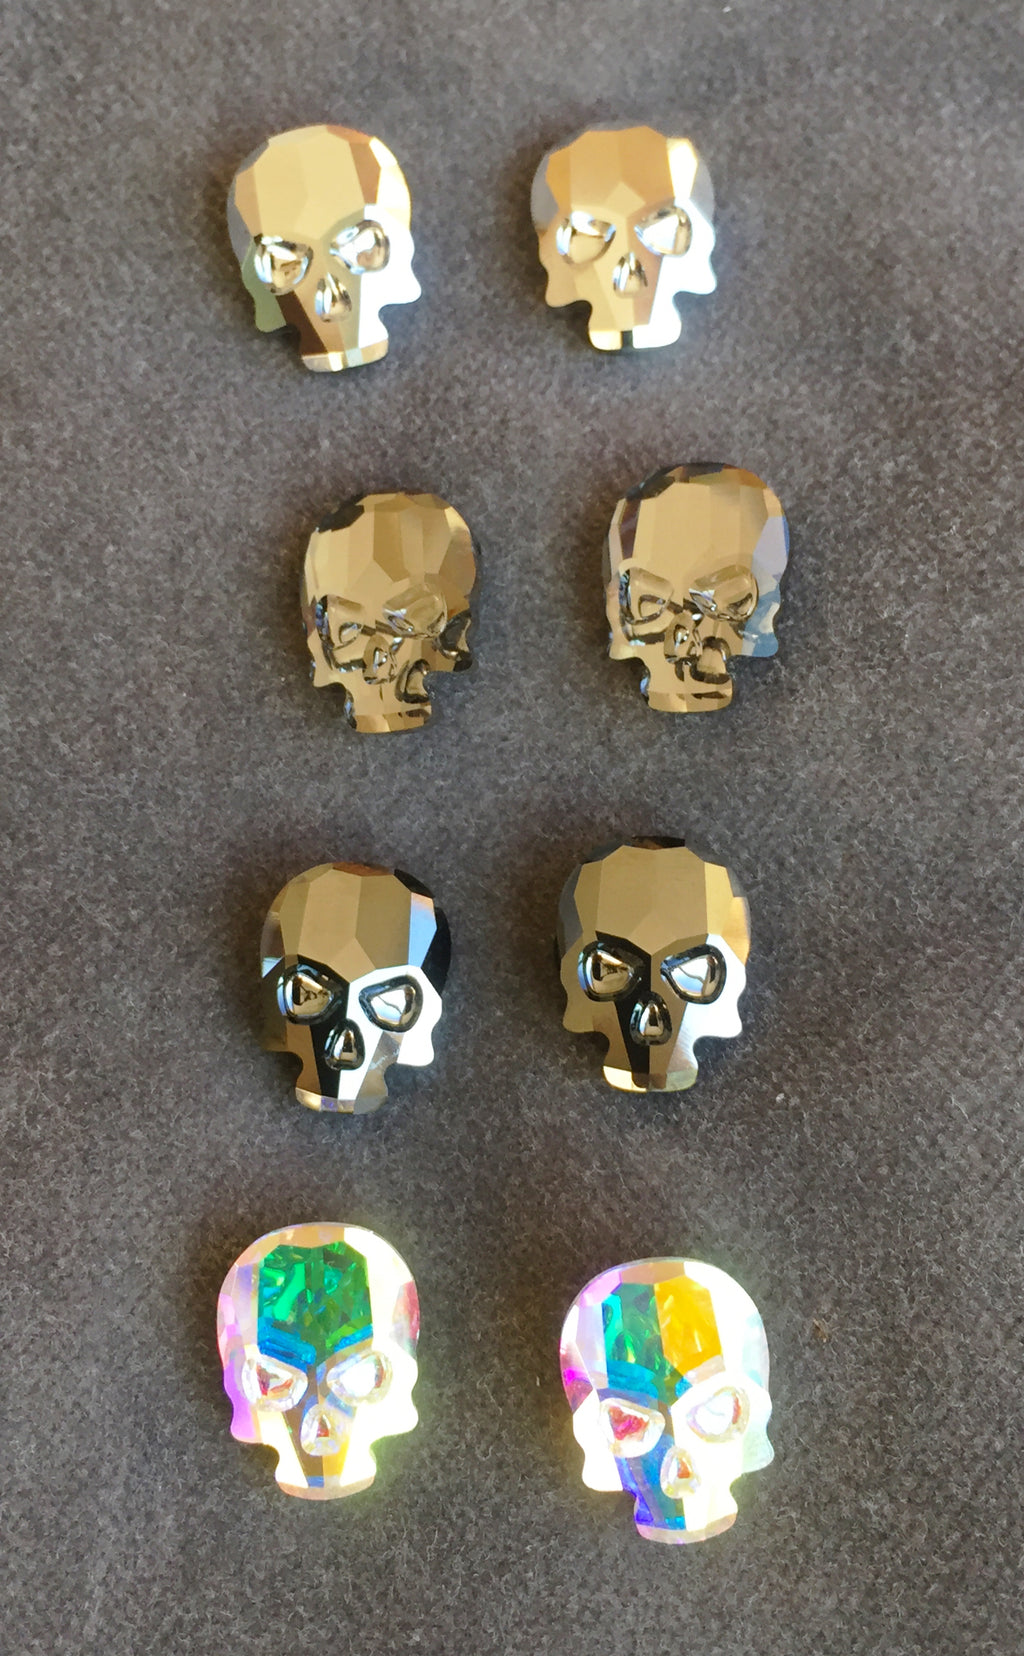 Crystal Skull Stud Earrings - large